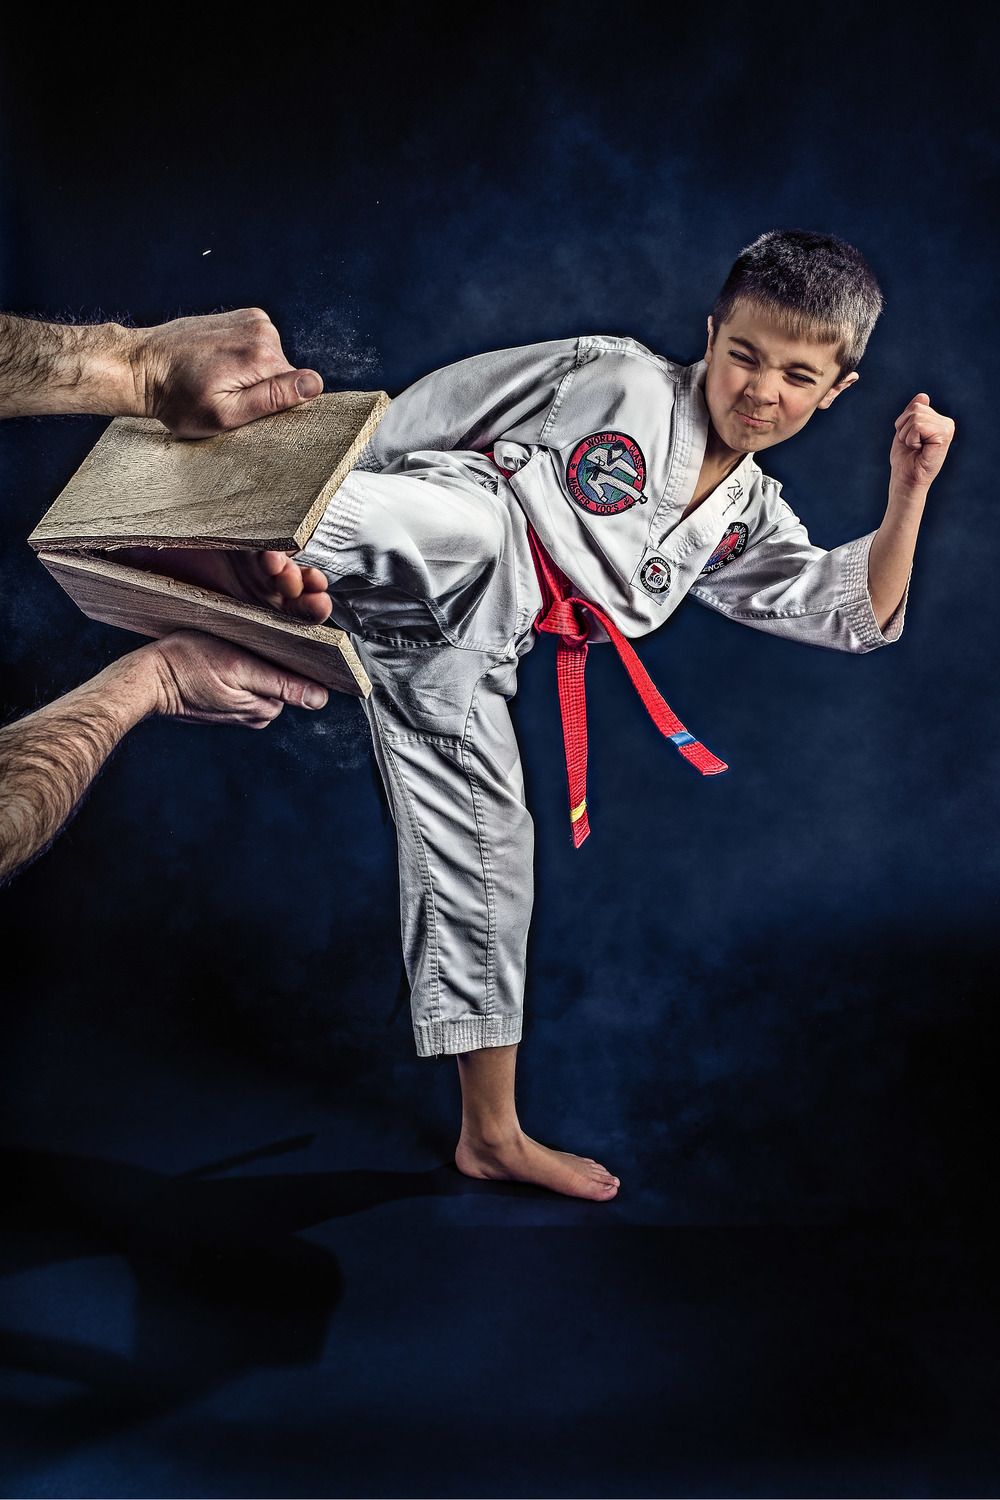 Taekwondo boy kicking a board.